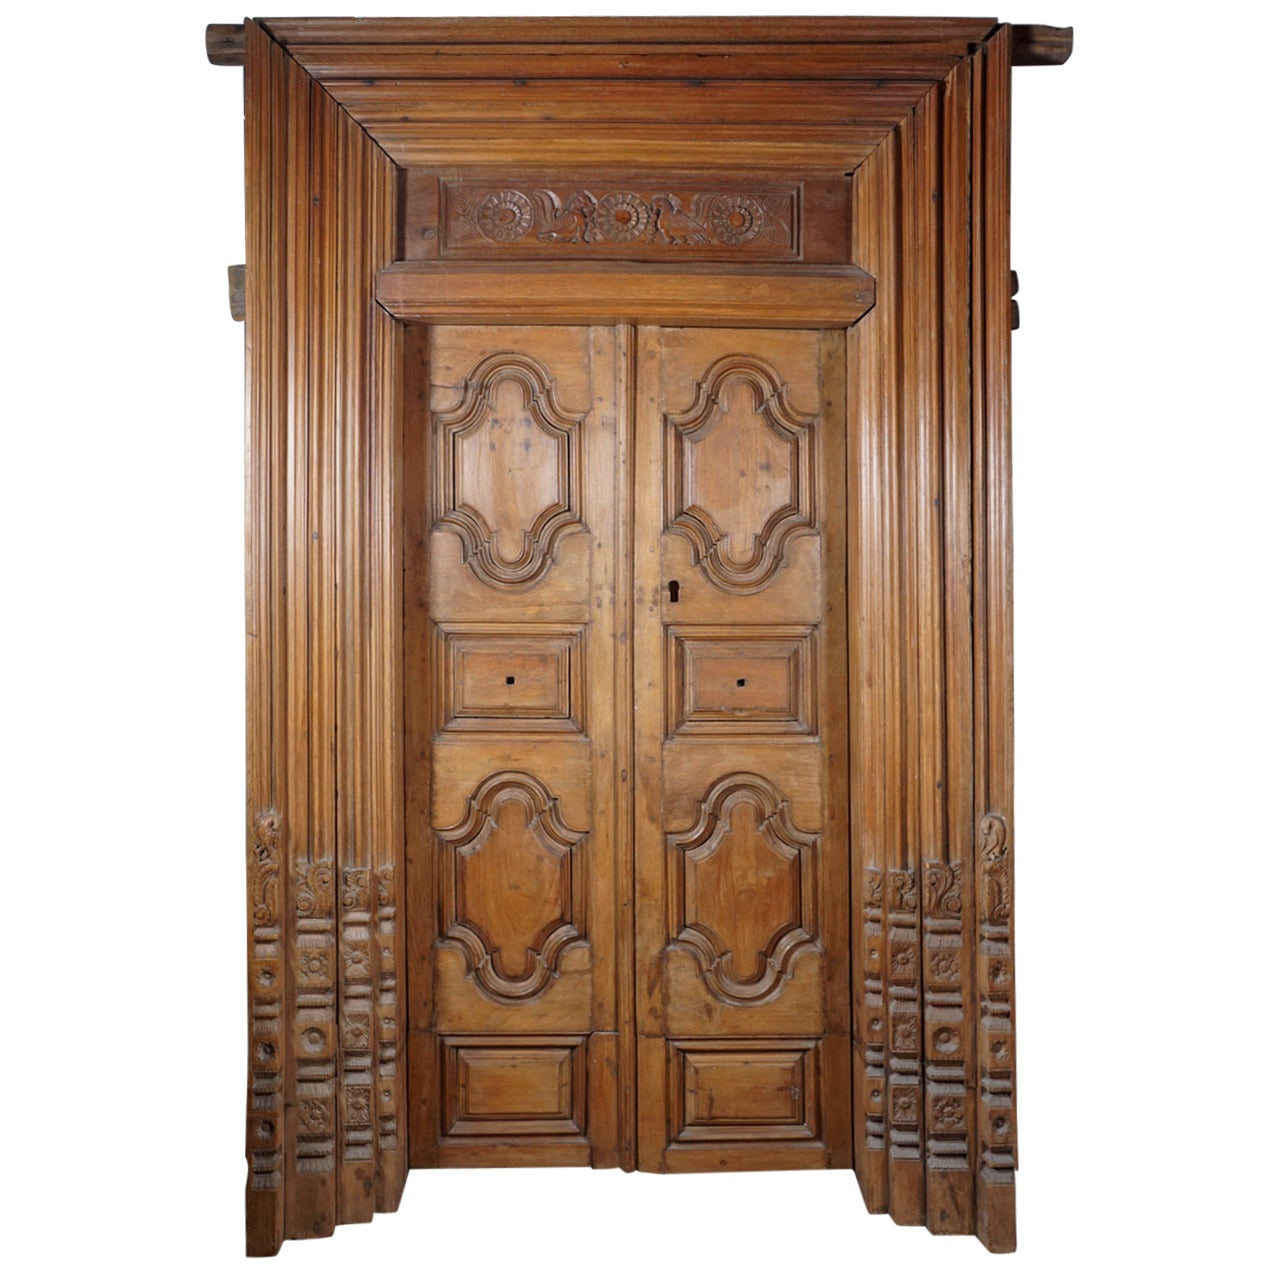 Asia Doors And Gates 69 For Sale At 1stdibs